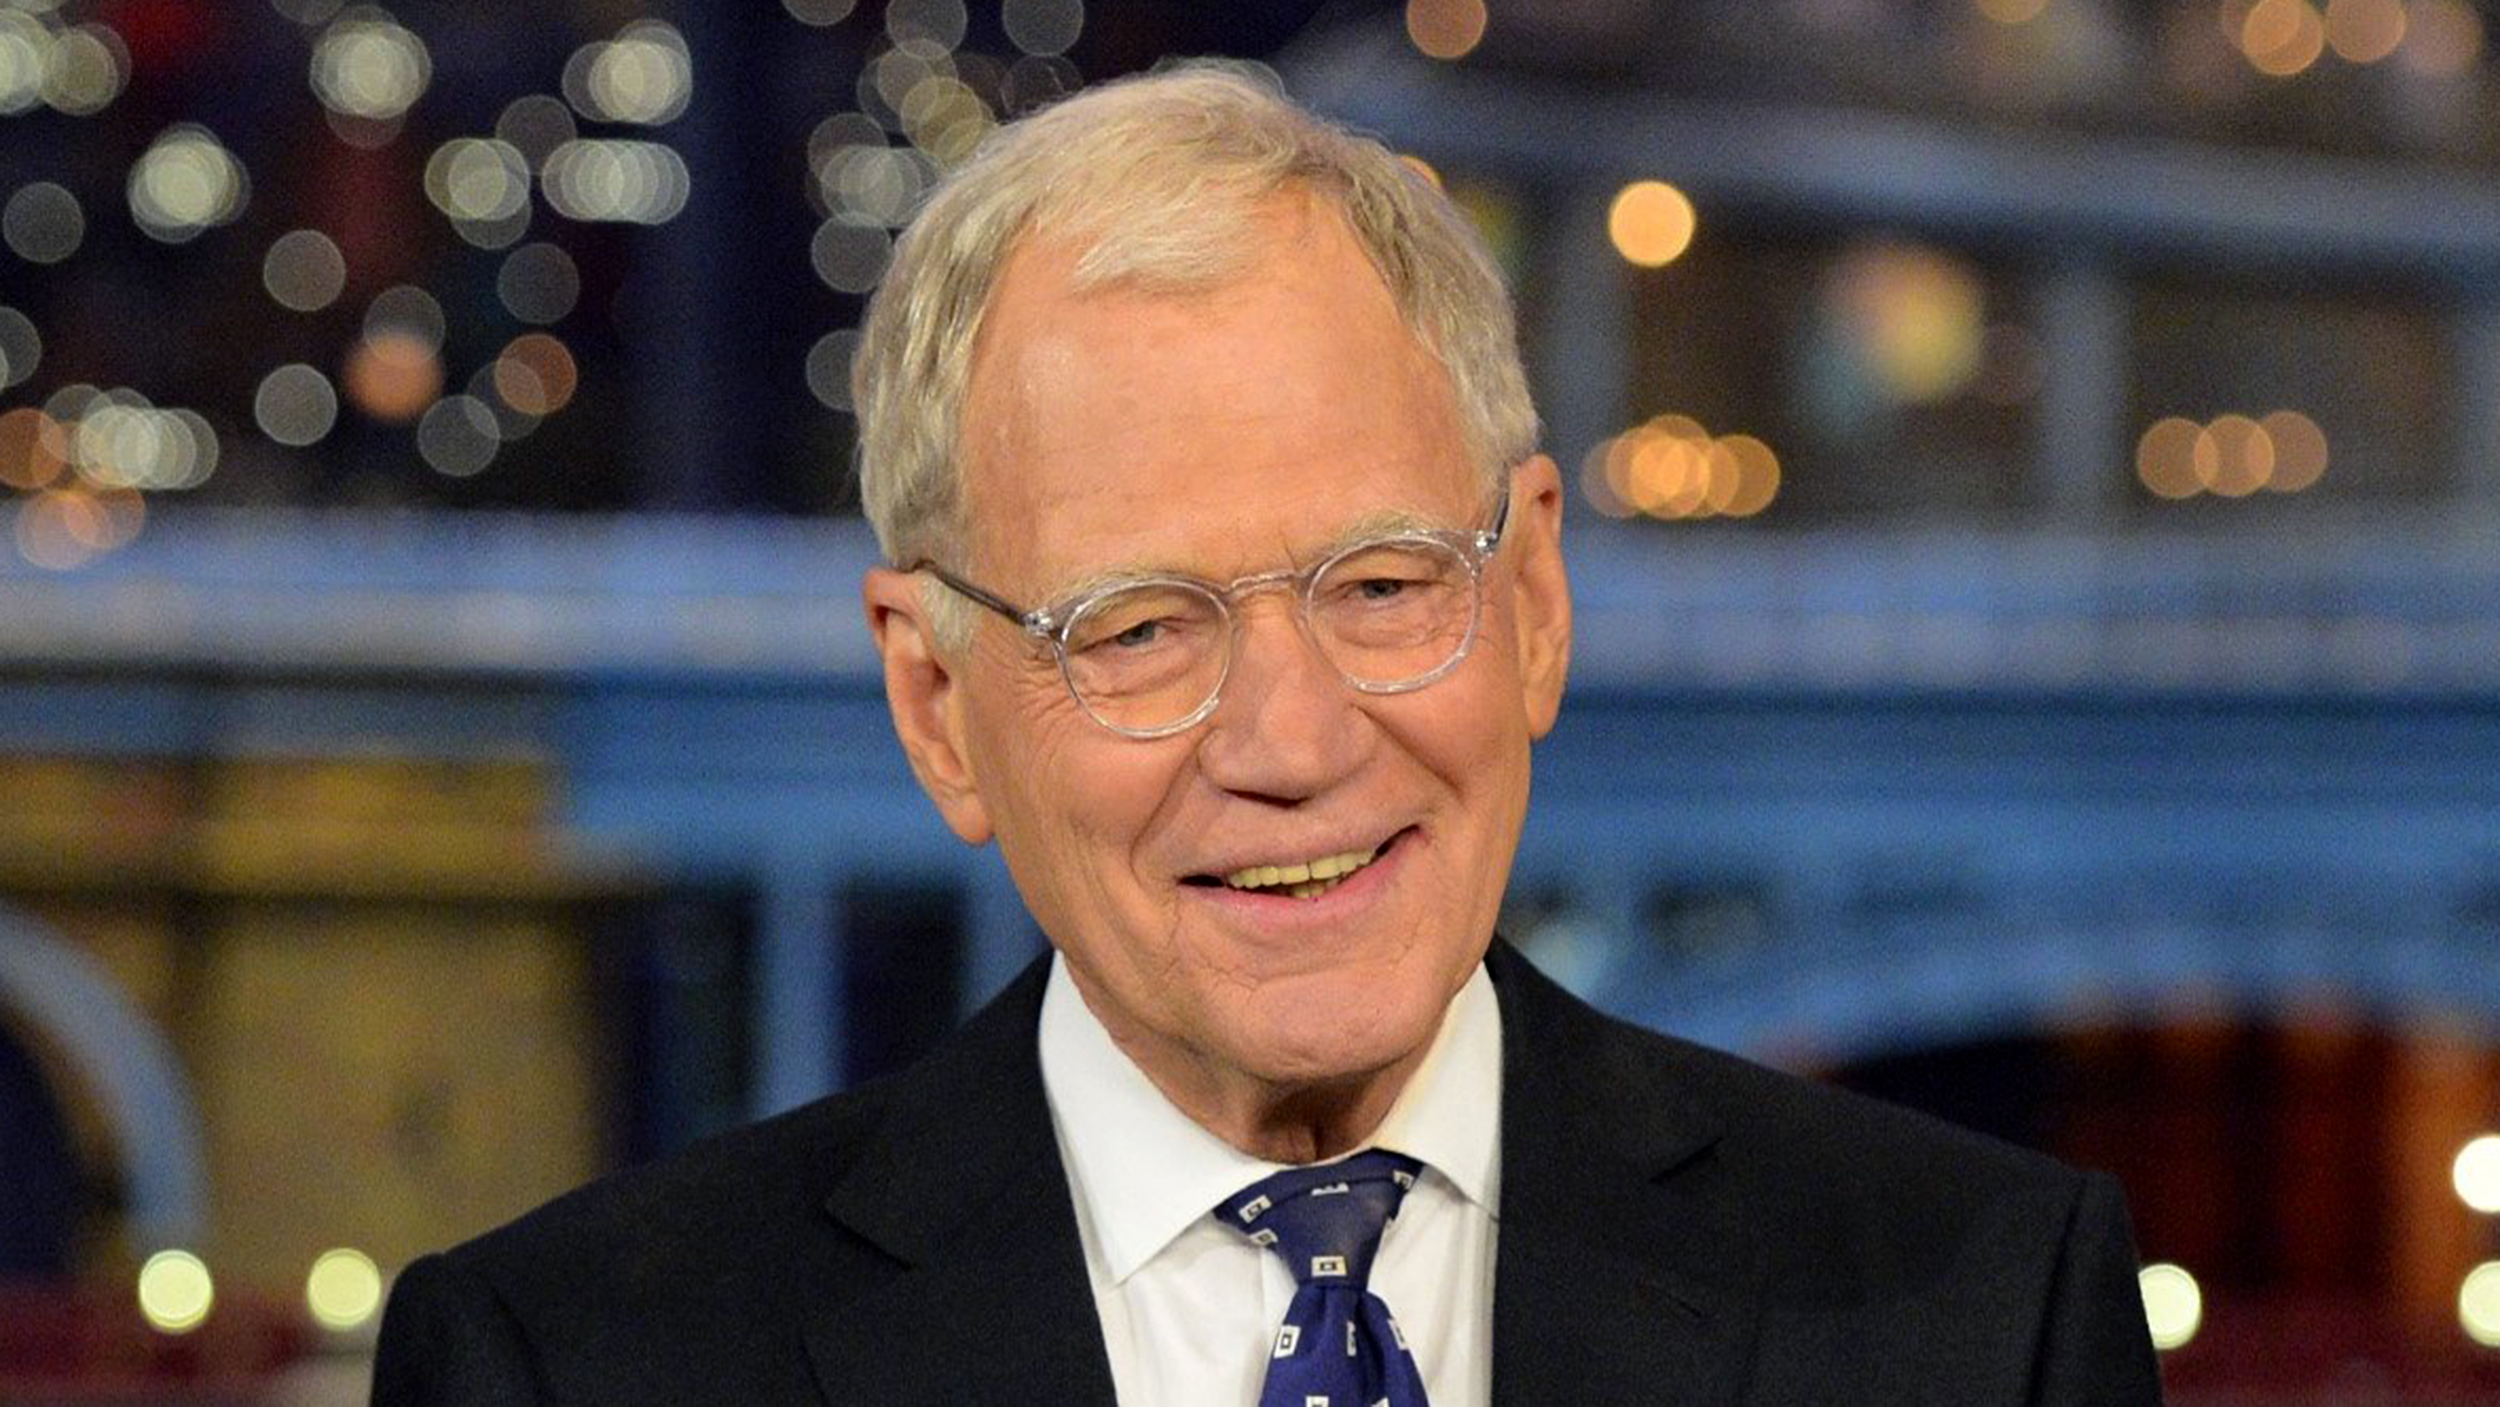 David Letterman Is Now Bald Bearded And Completely